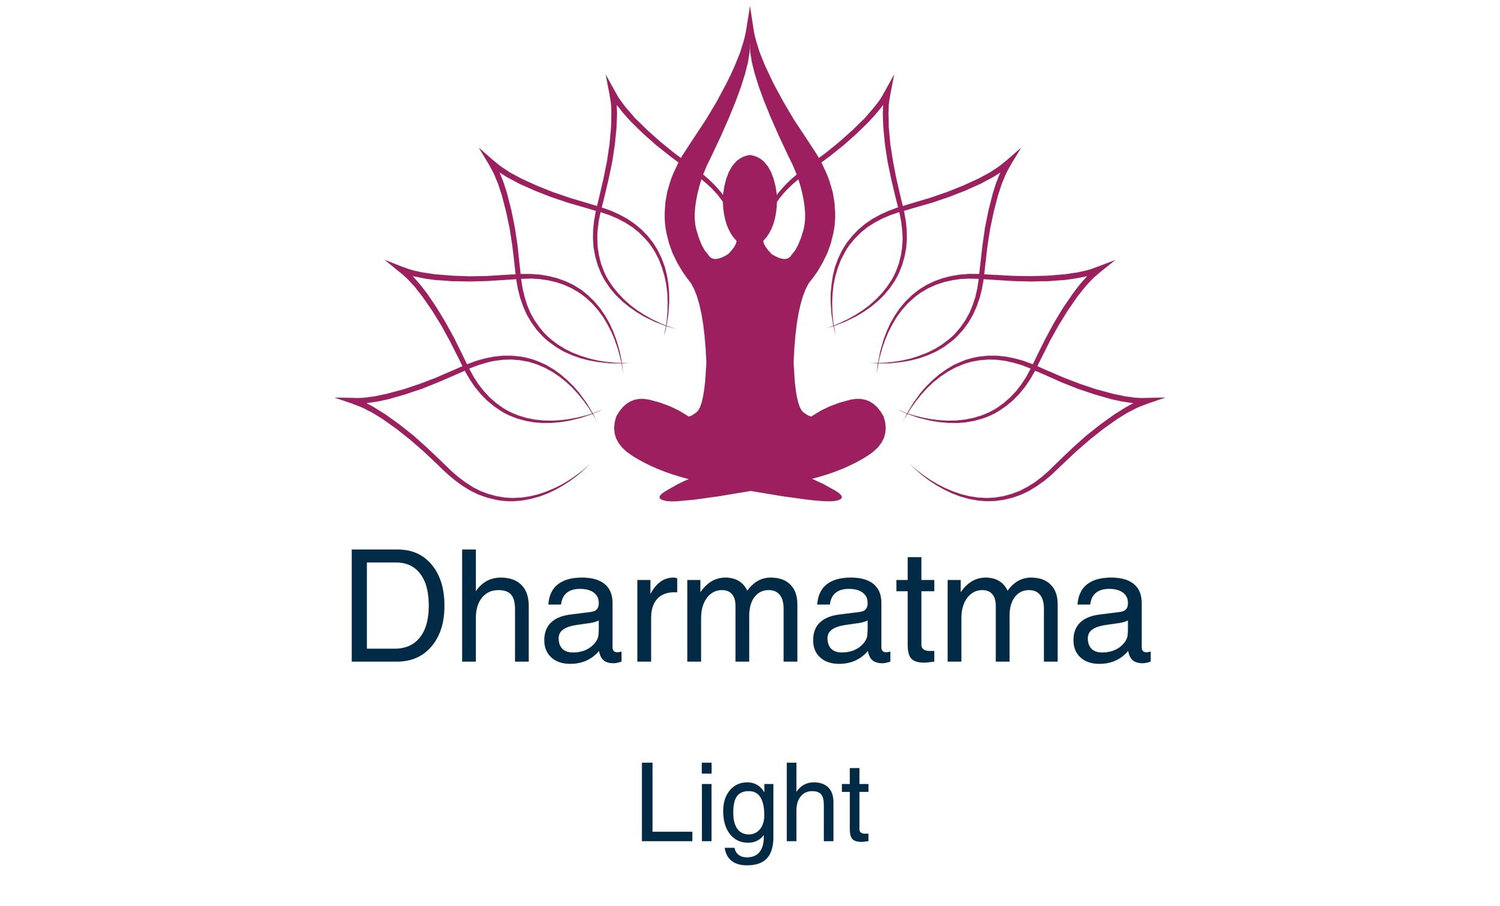 Dharmatma Light